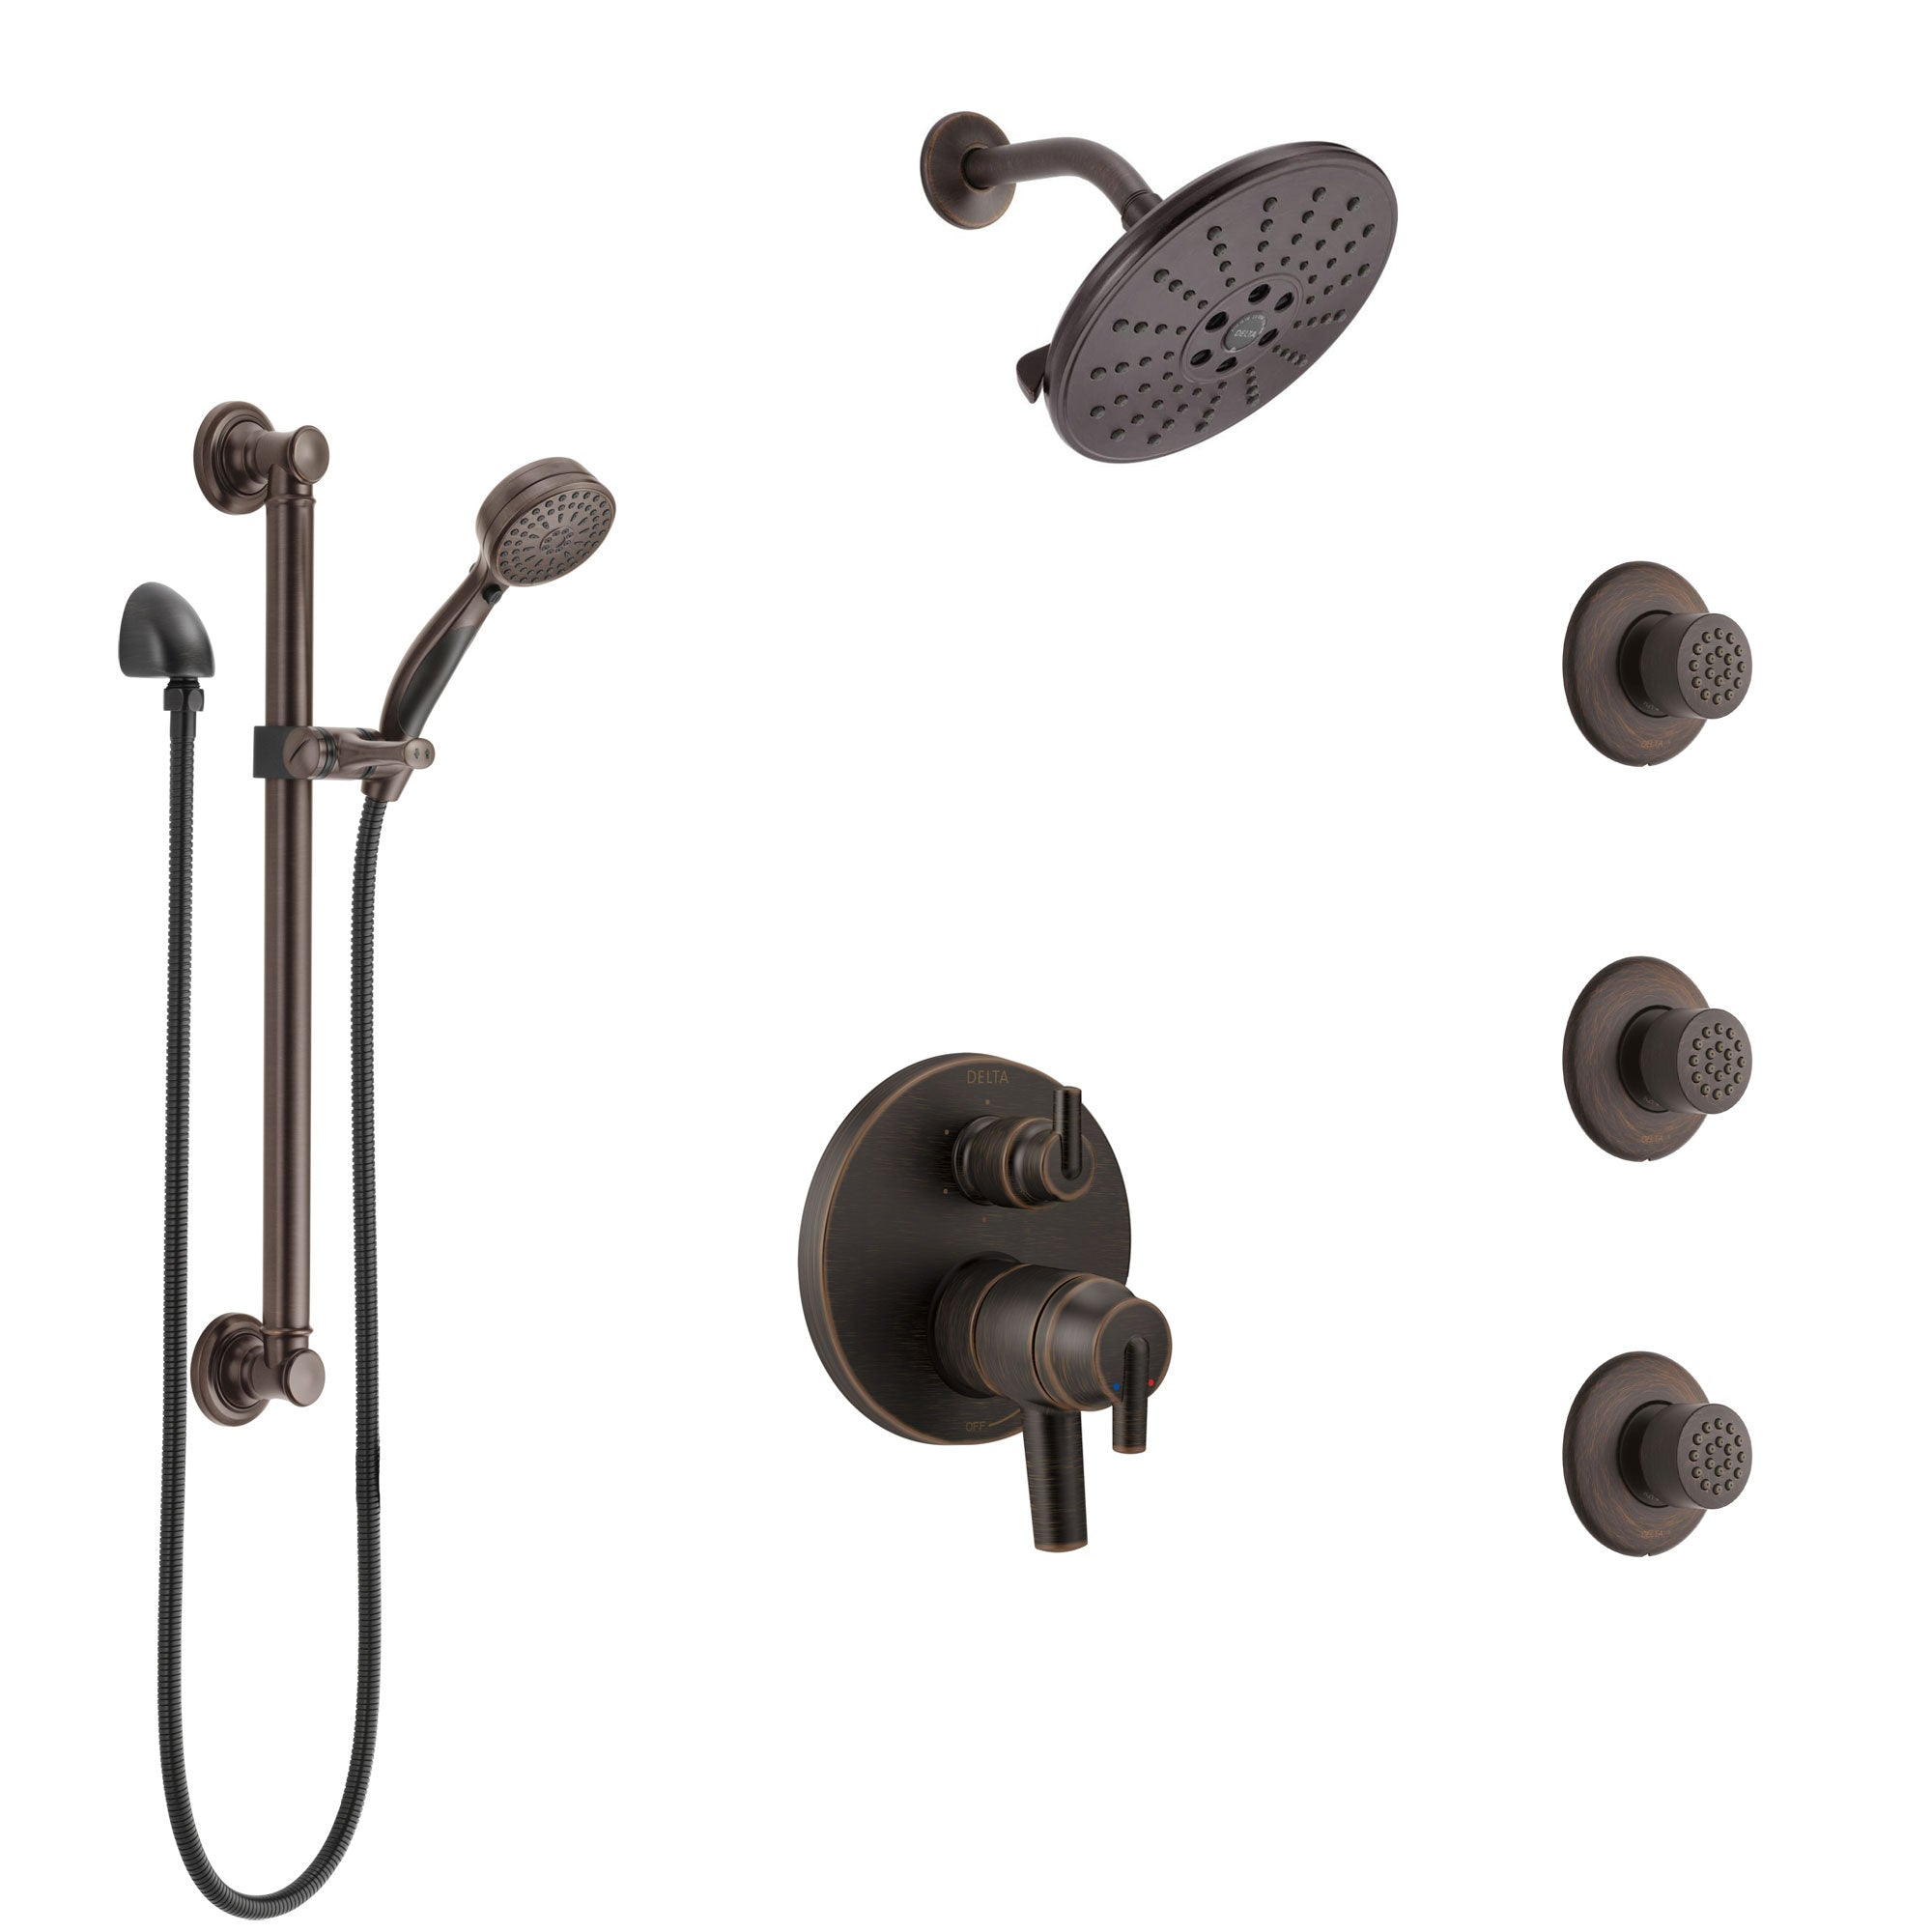 Delta Trinsic Venetian Bronze Shower System with Dual Control Handle, Integrated Diverter, Showerhead, 3 Body Sprays, Grab Bar Hand Spray SS27959RB3